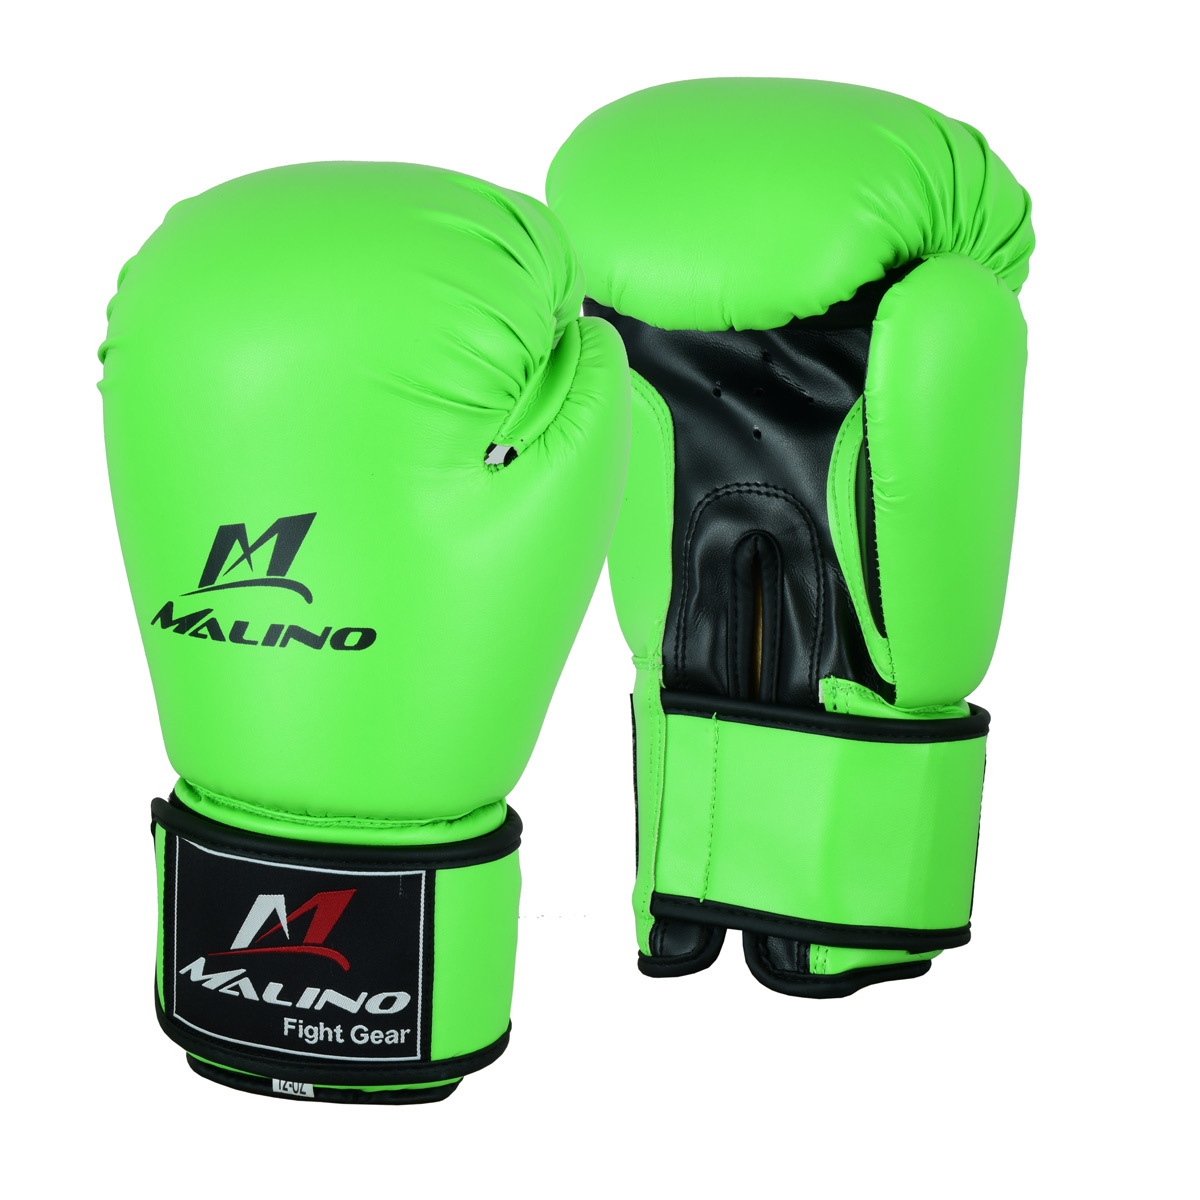 Boxing Gloves for Men Green-Black